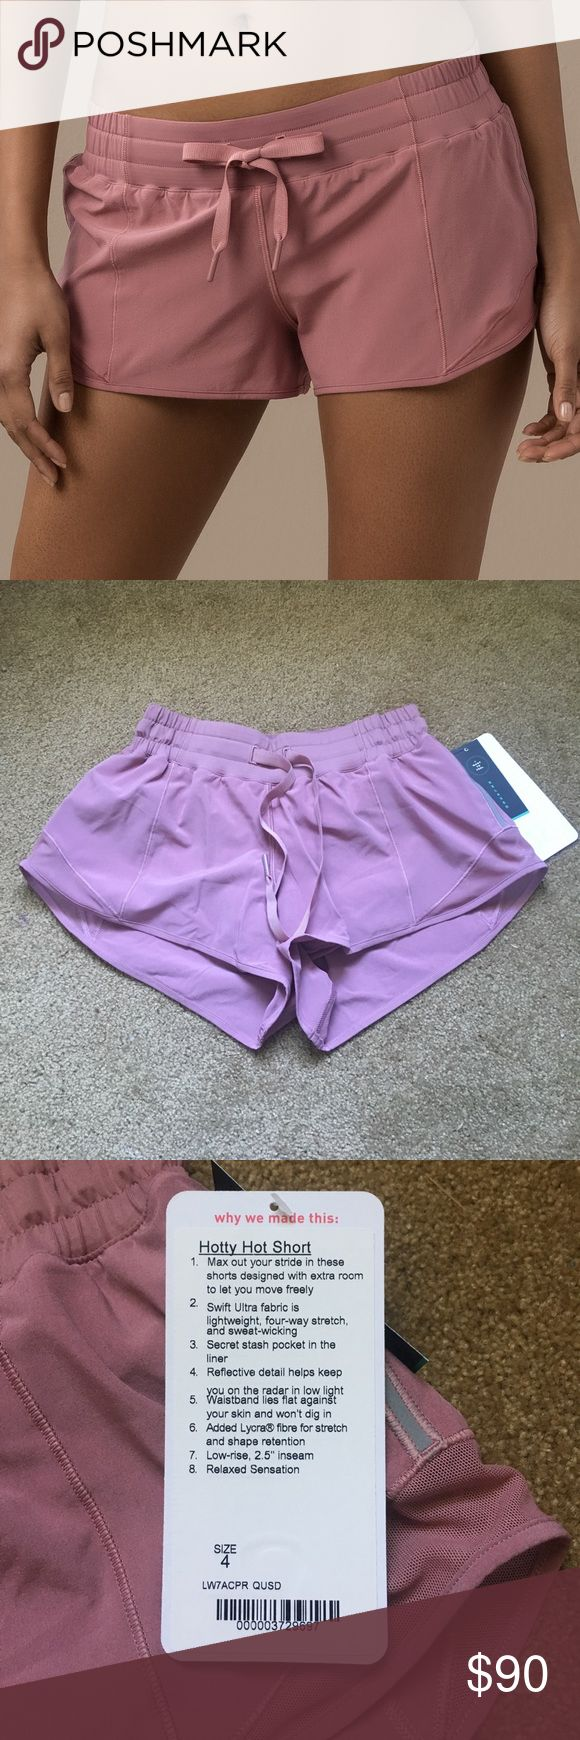 Lululemon Hotty Hot Short Quicksand NWT. Stock photo and photo with the tags show true color. Has zipper pocket and pocket in the liner. This color is now sold out in size 2 and 4. No rude comments about price. You will receive one pair in the selected size. lululemon athletica Shorts